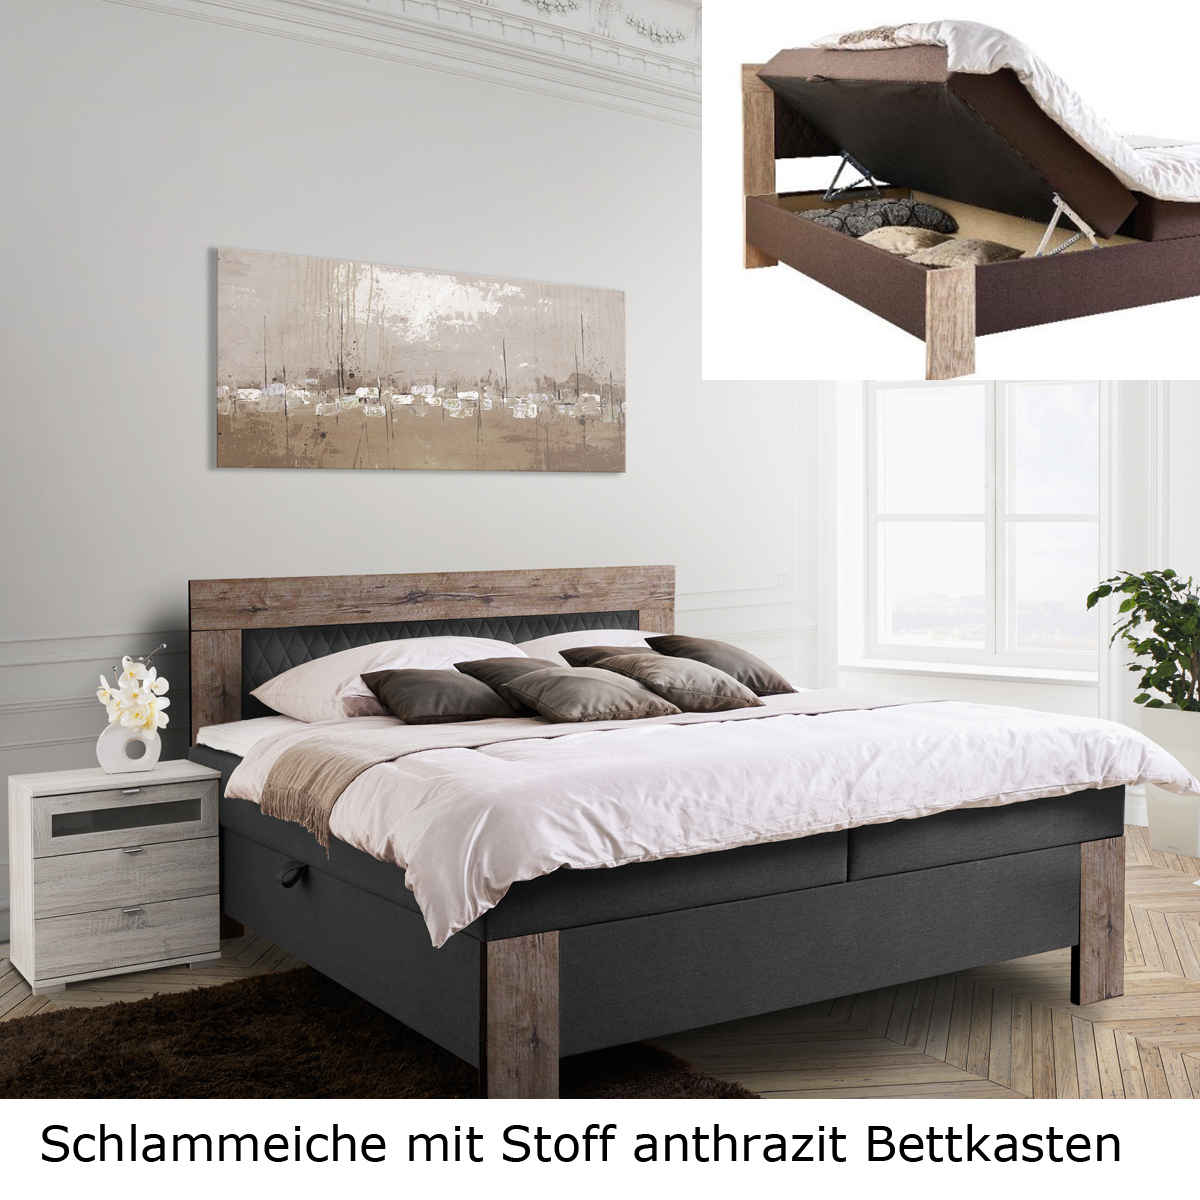 boxspringbett kiel bett hotelbett farbauswahl 2 stofffarben 3 holzfarben 180 cm ebay. Black Bedroom Furniture Sets. Home Design Ideas